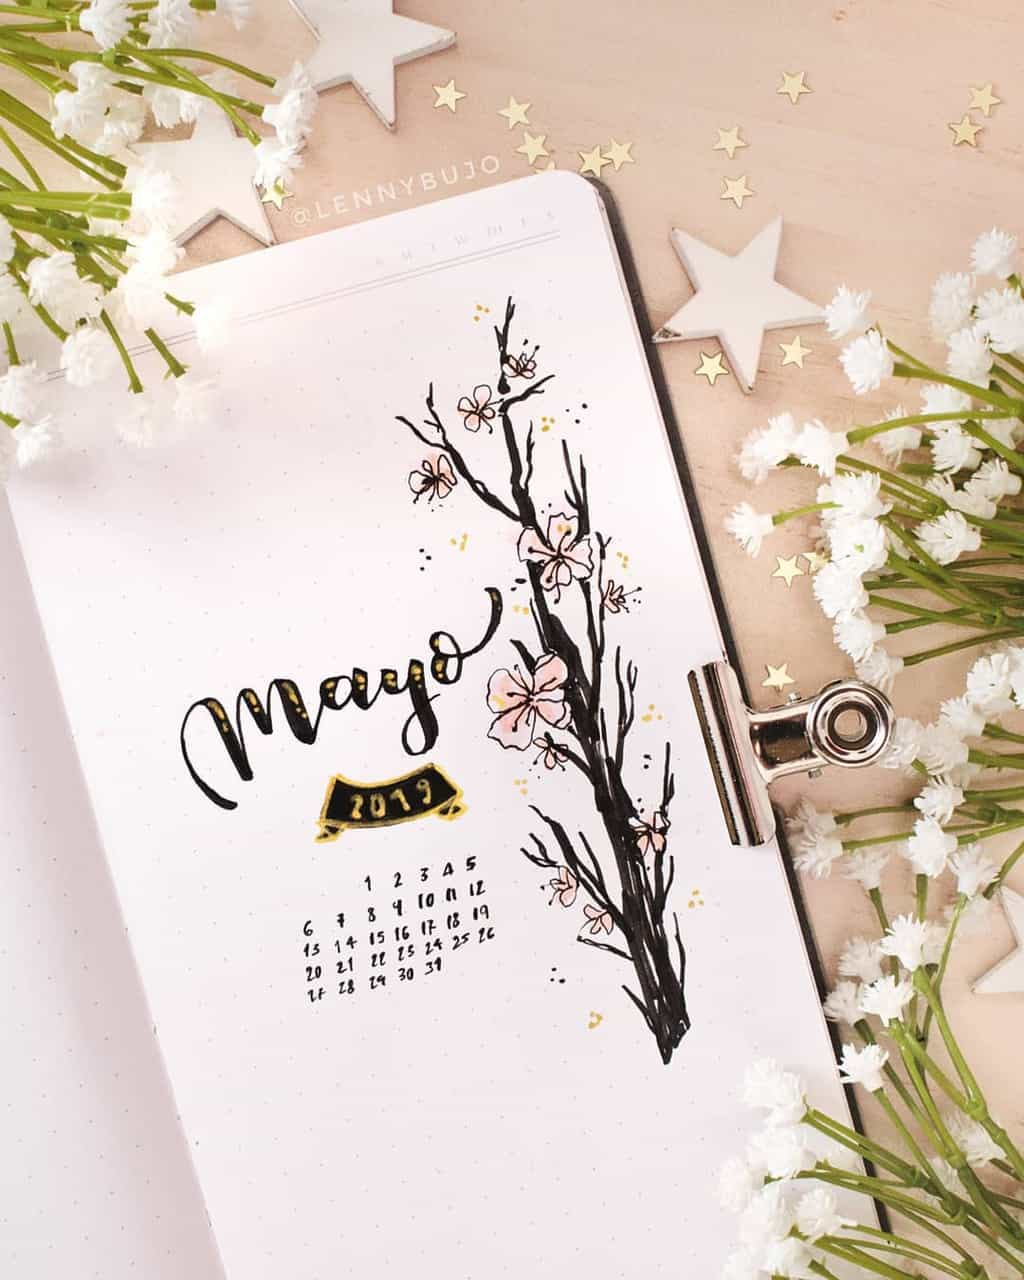 Spring Bullet Journal Theme Ideas - cover page by @lennydoesthings | Masha Plans